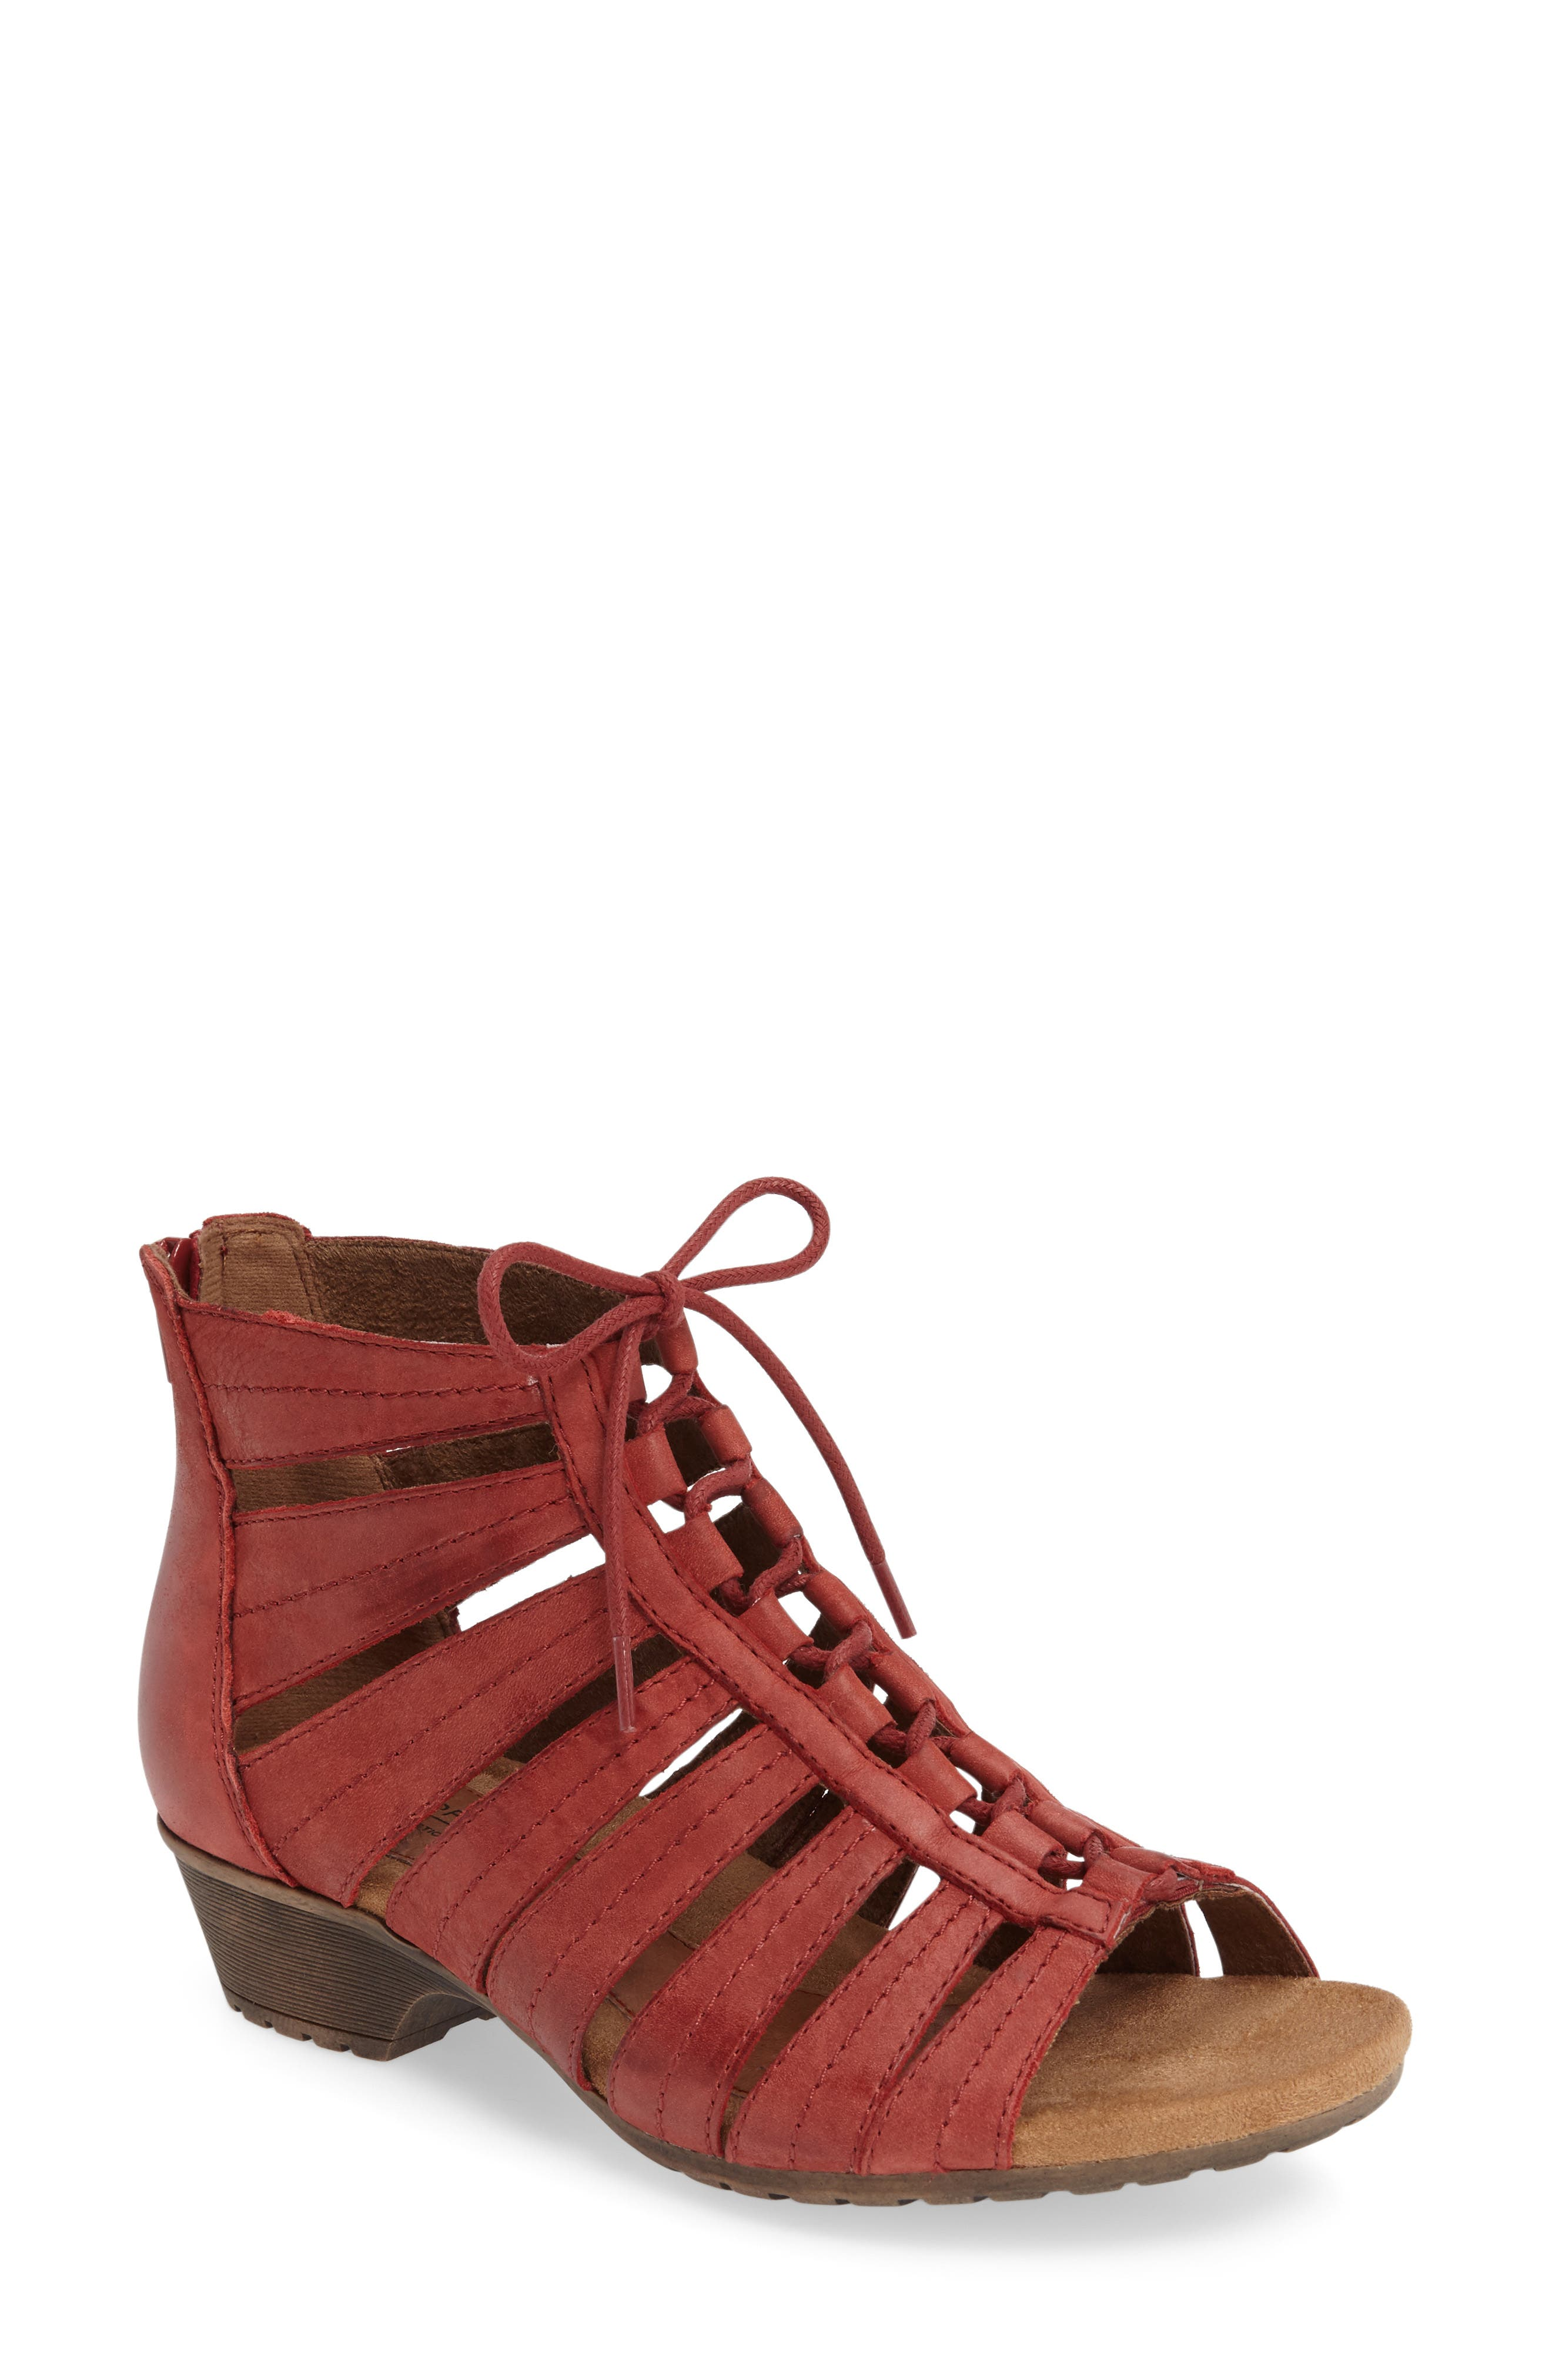 'Gabby' Lace-Up Sandal,                             Main thumbnail 8, color,